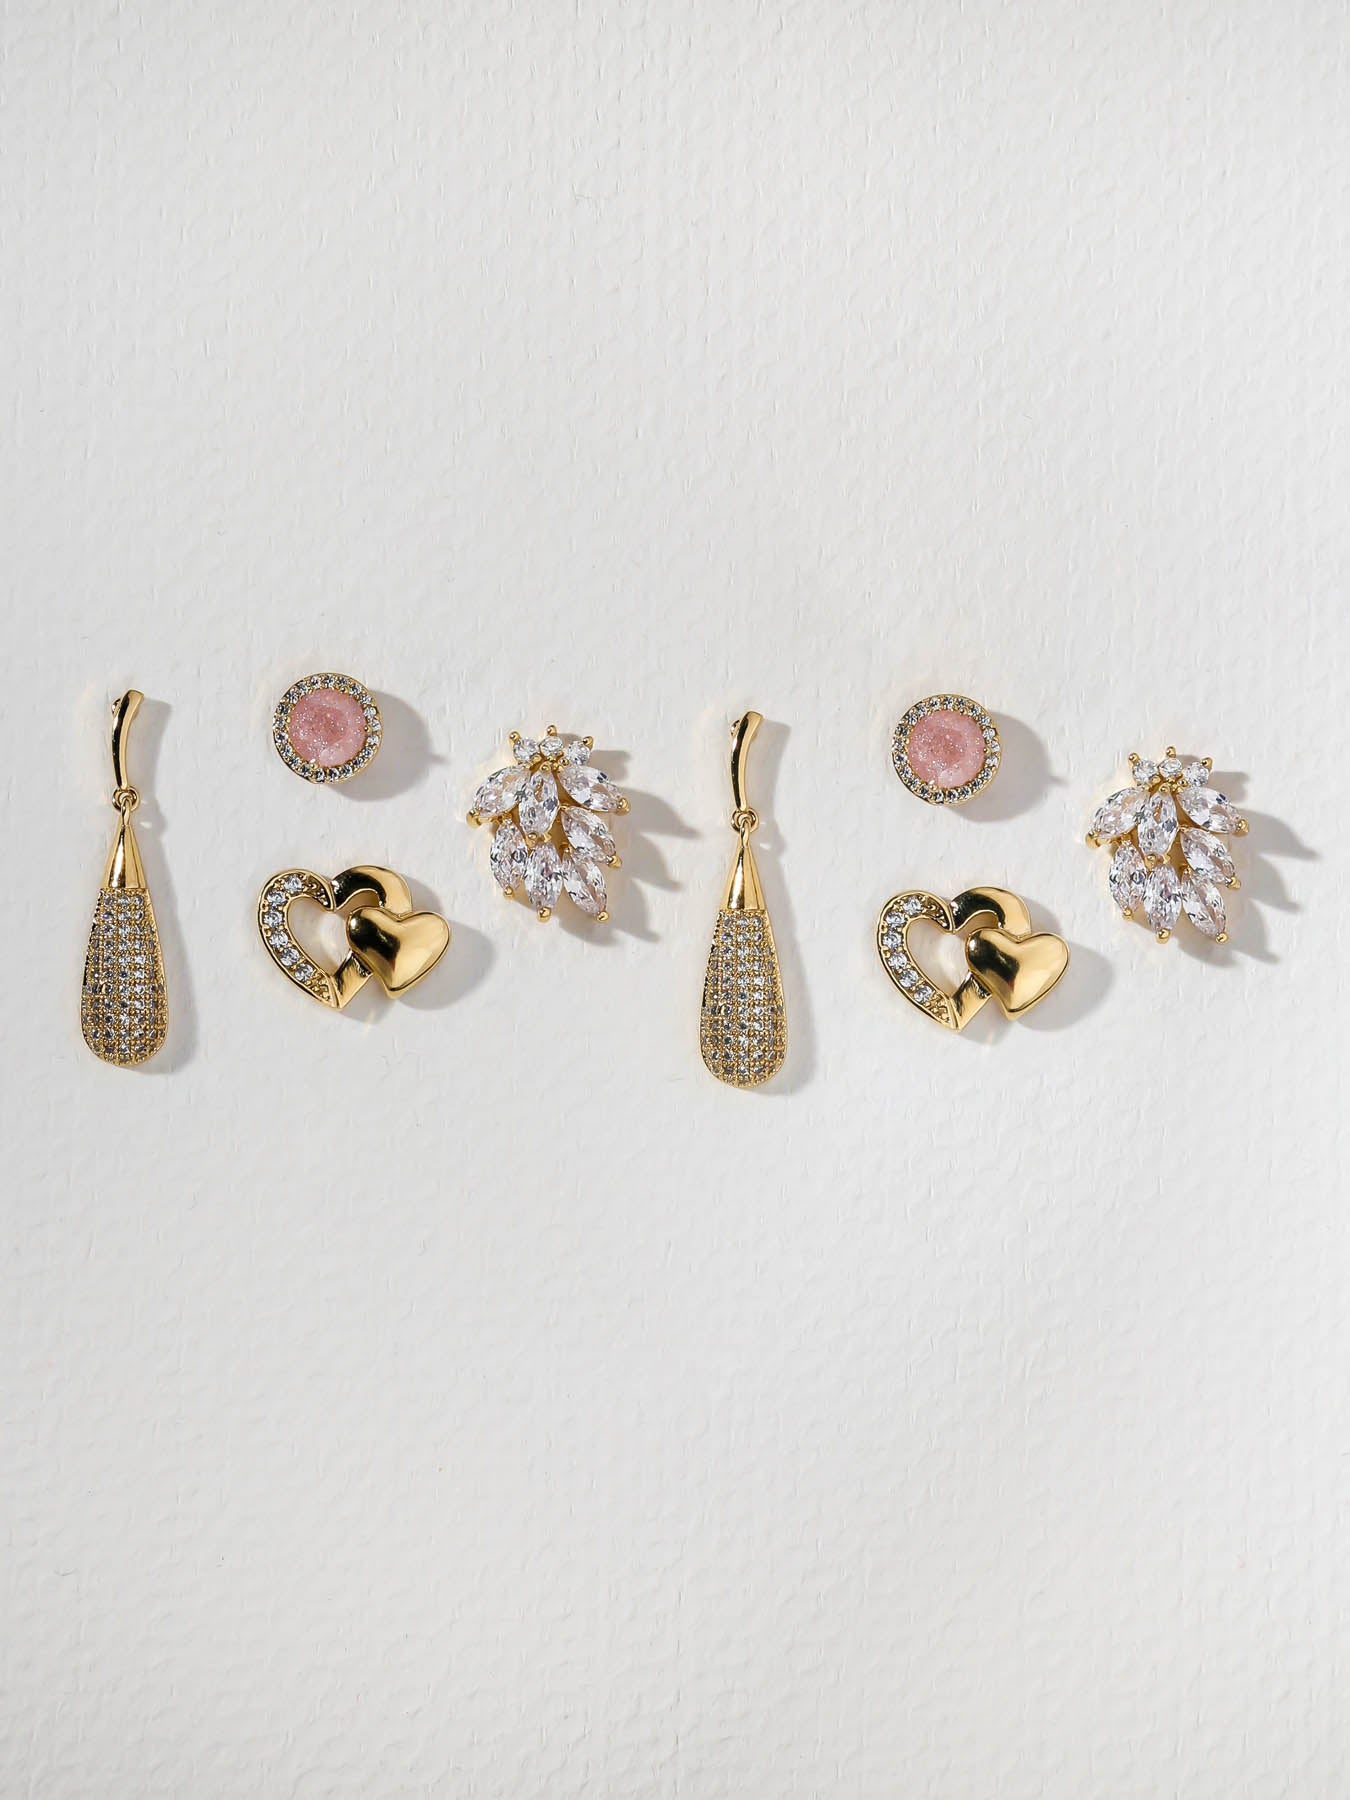 The First Crush Earring Set